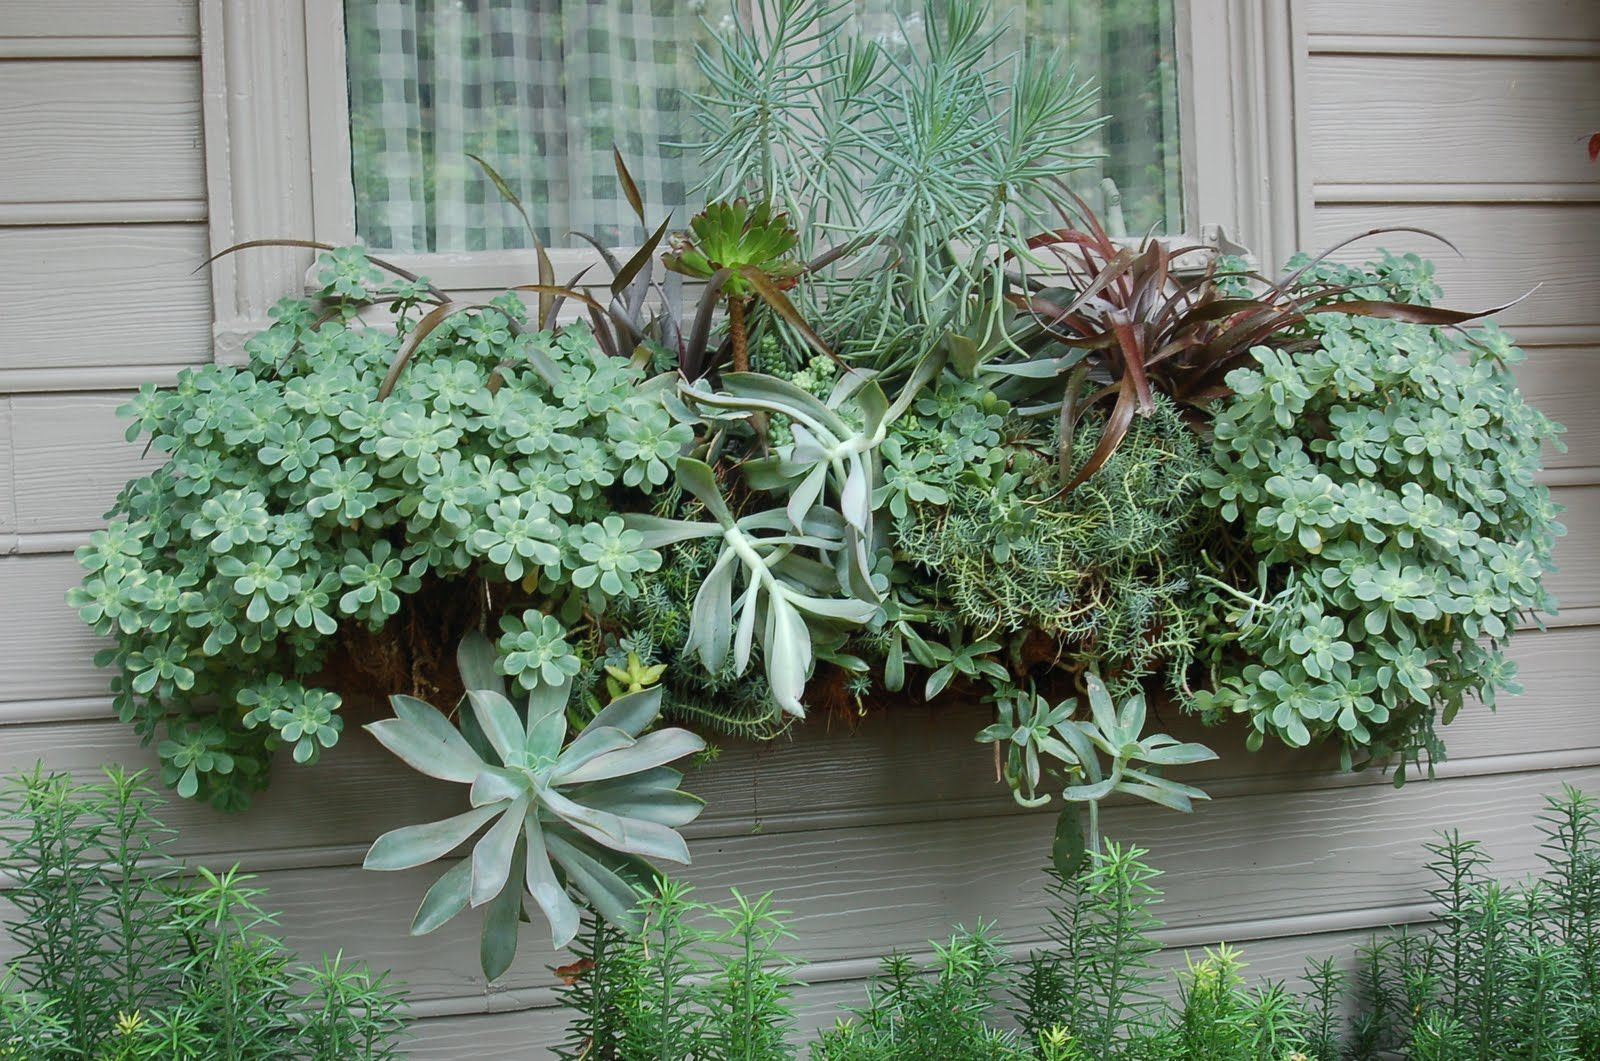 Succulent Arrangement Ideas | ... ideas on planting with these extremely drought tolerant plants check